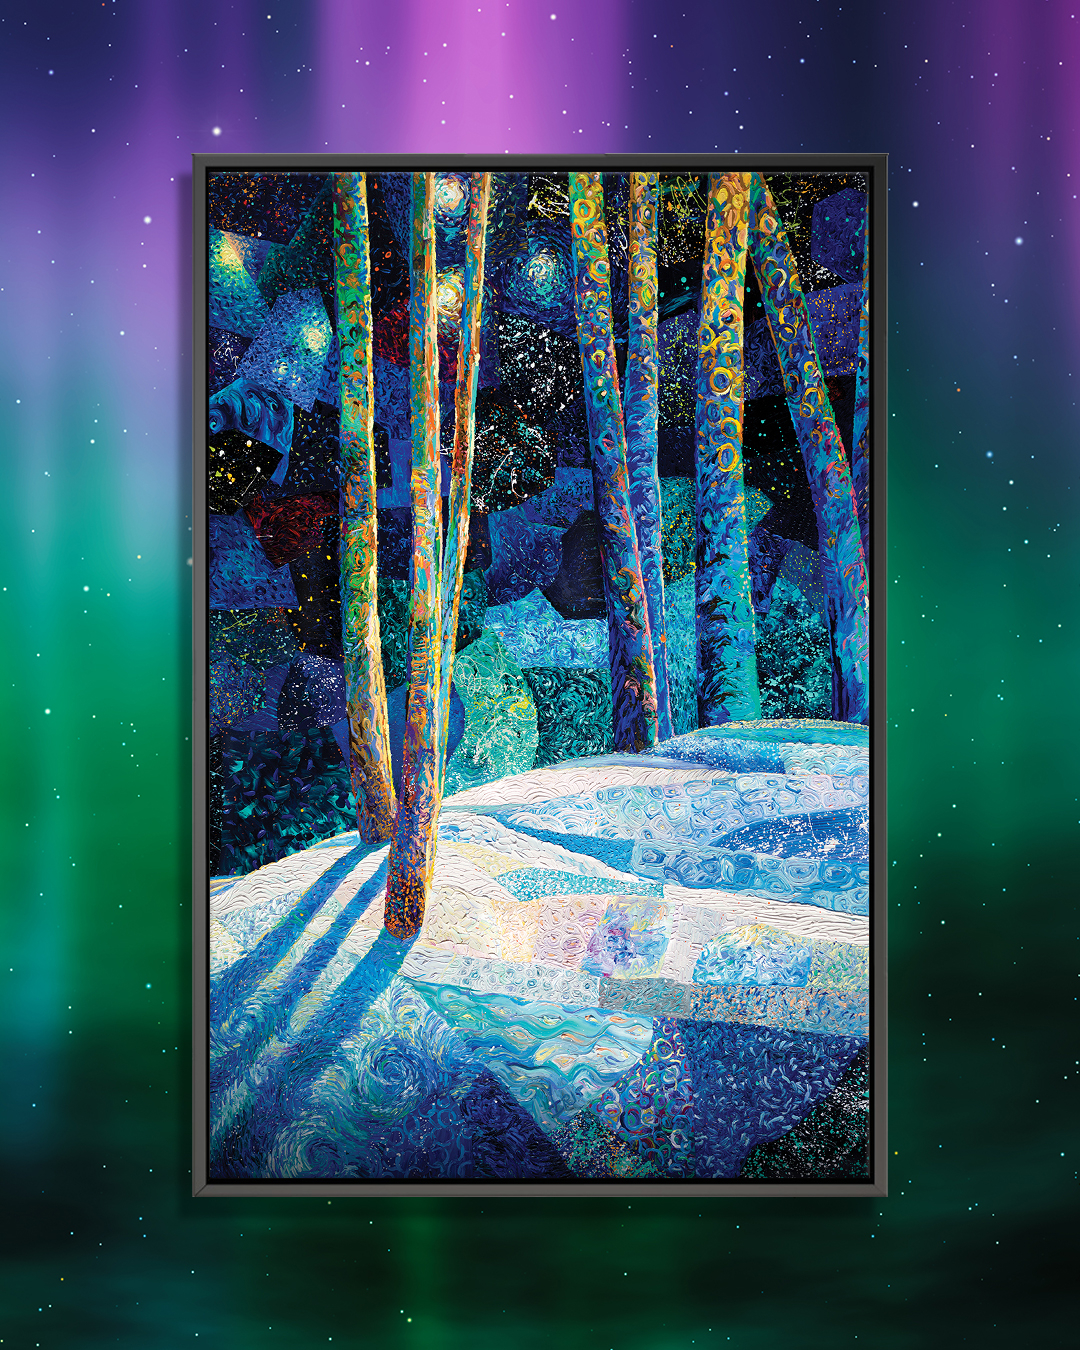 """""""The Ion, The Stitch, and The Windows"""" by Iris Scott shows long tree branches in front of multicolored rock-like figures."""